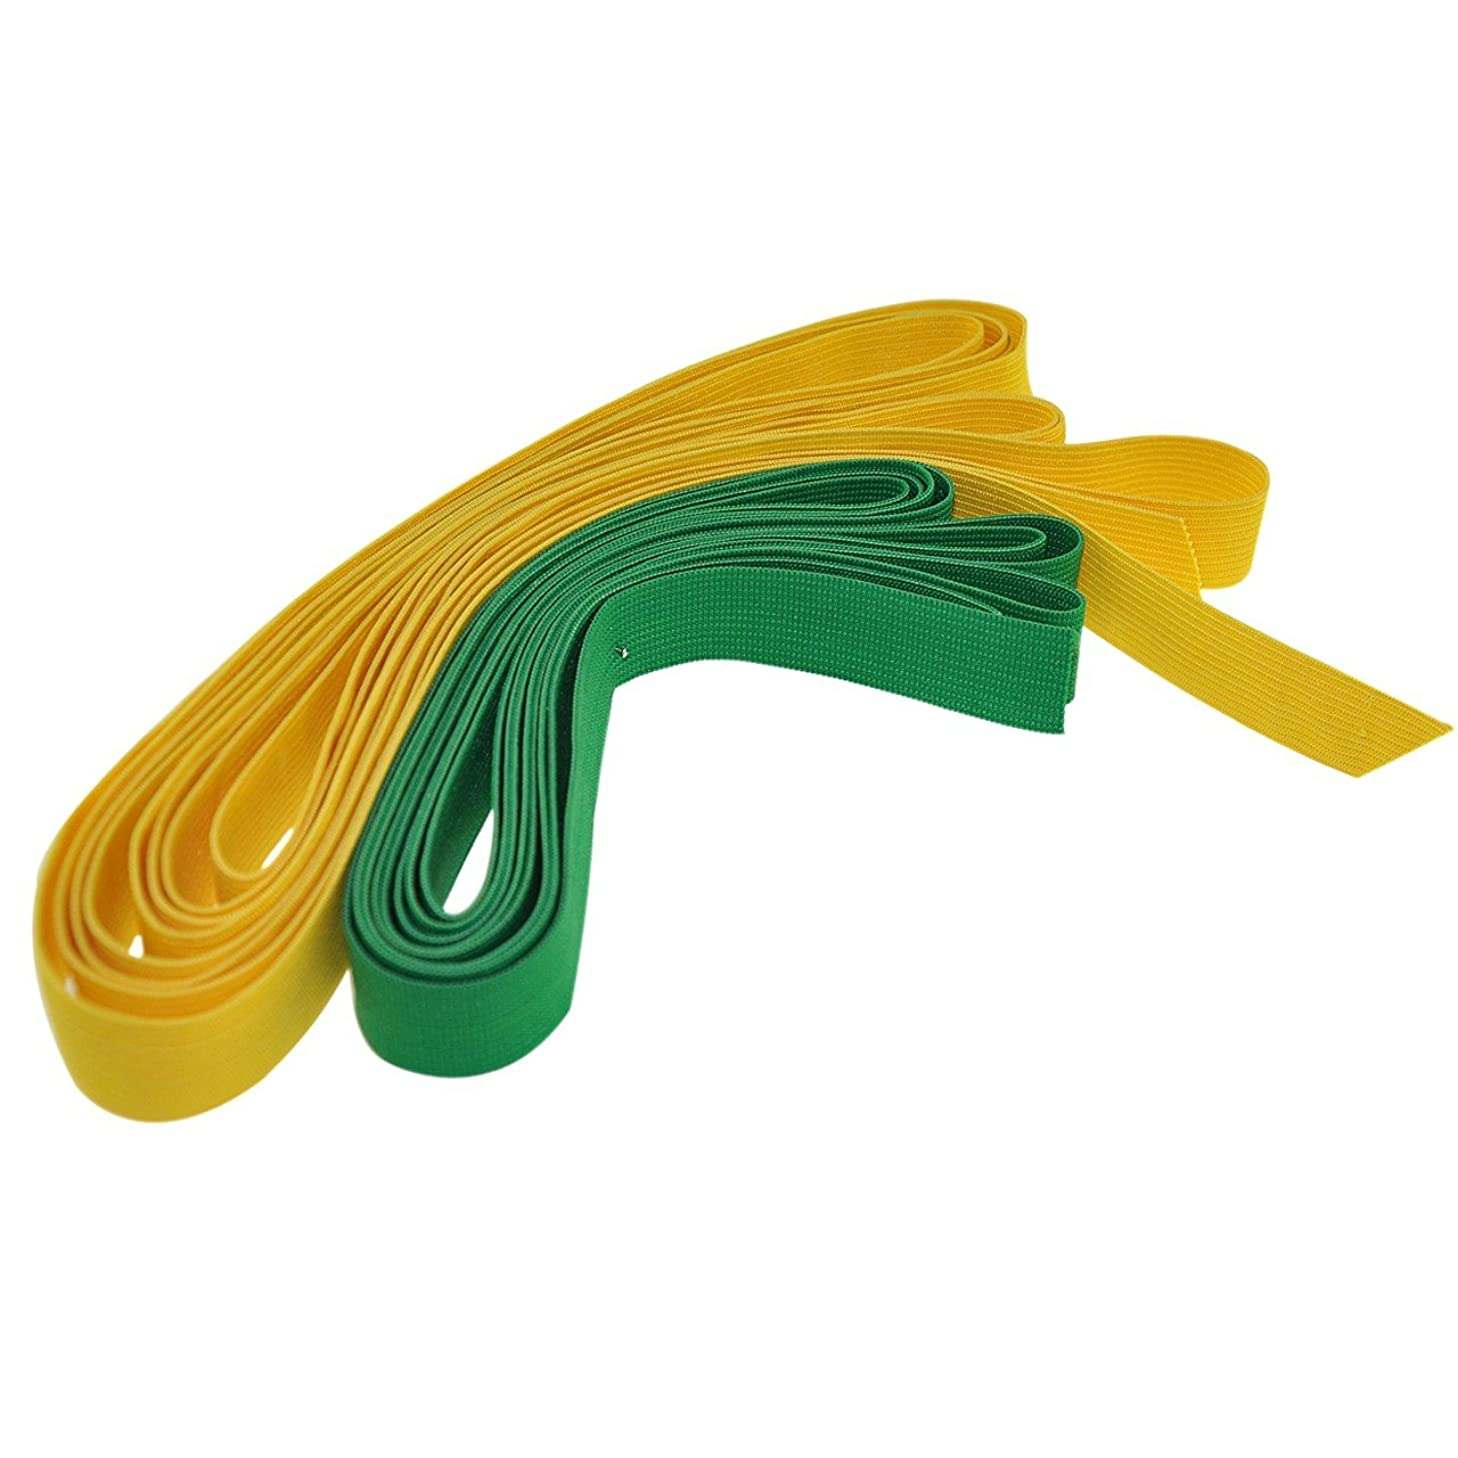 Braided Elastic Roll Combo (Sea Green and Bright Yellow) 0.8 inches 2.2 yds - Flat Knit Elastic - YazyCraft